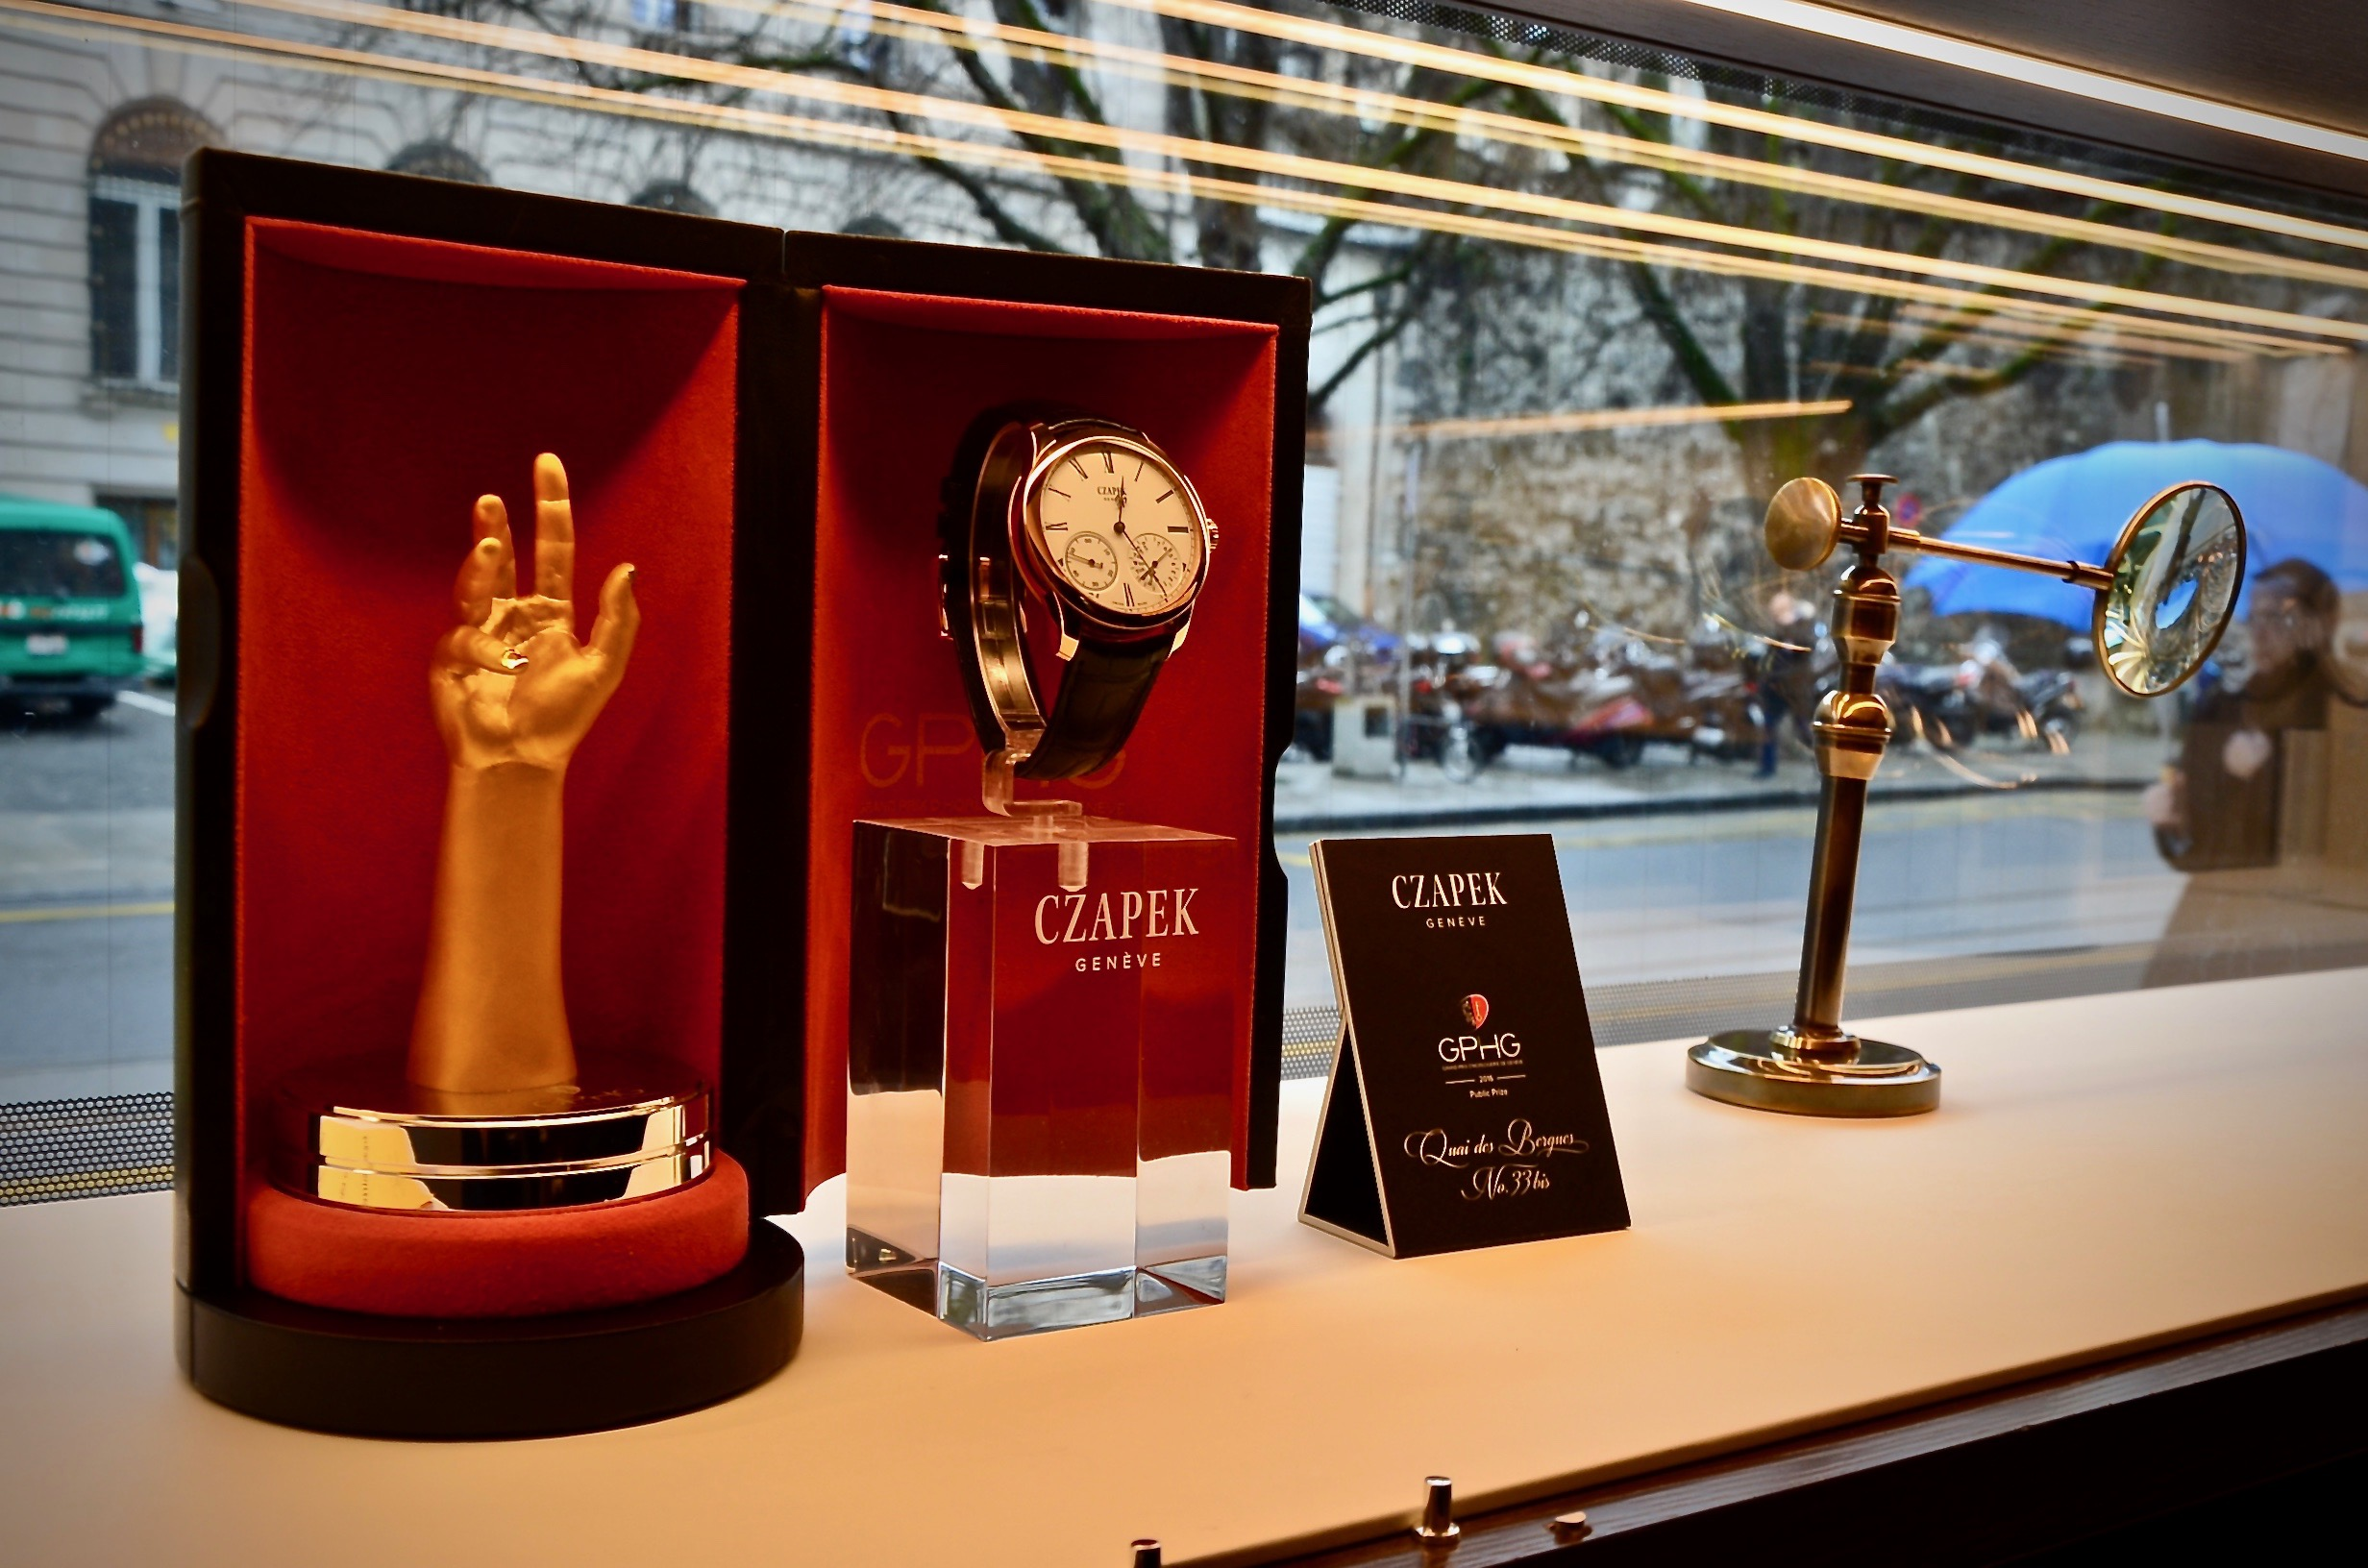 The GPHG Public Prize on display at Geneva's boutique.